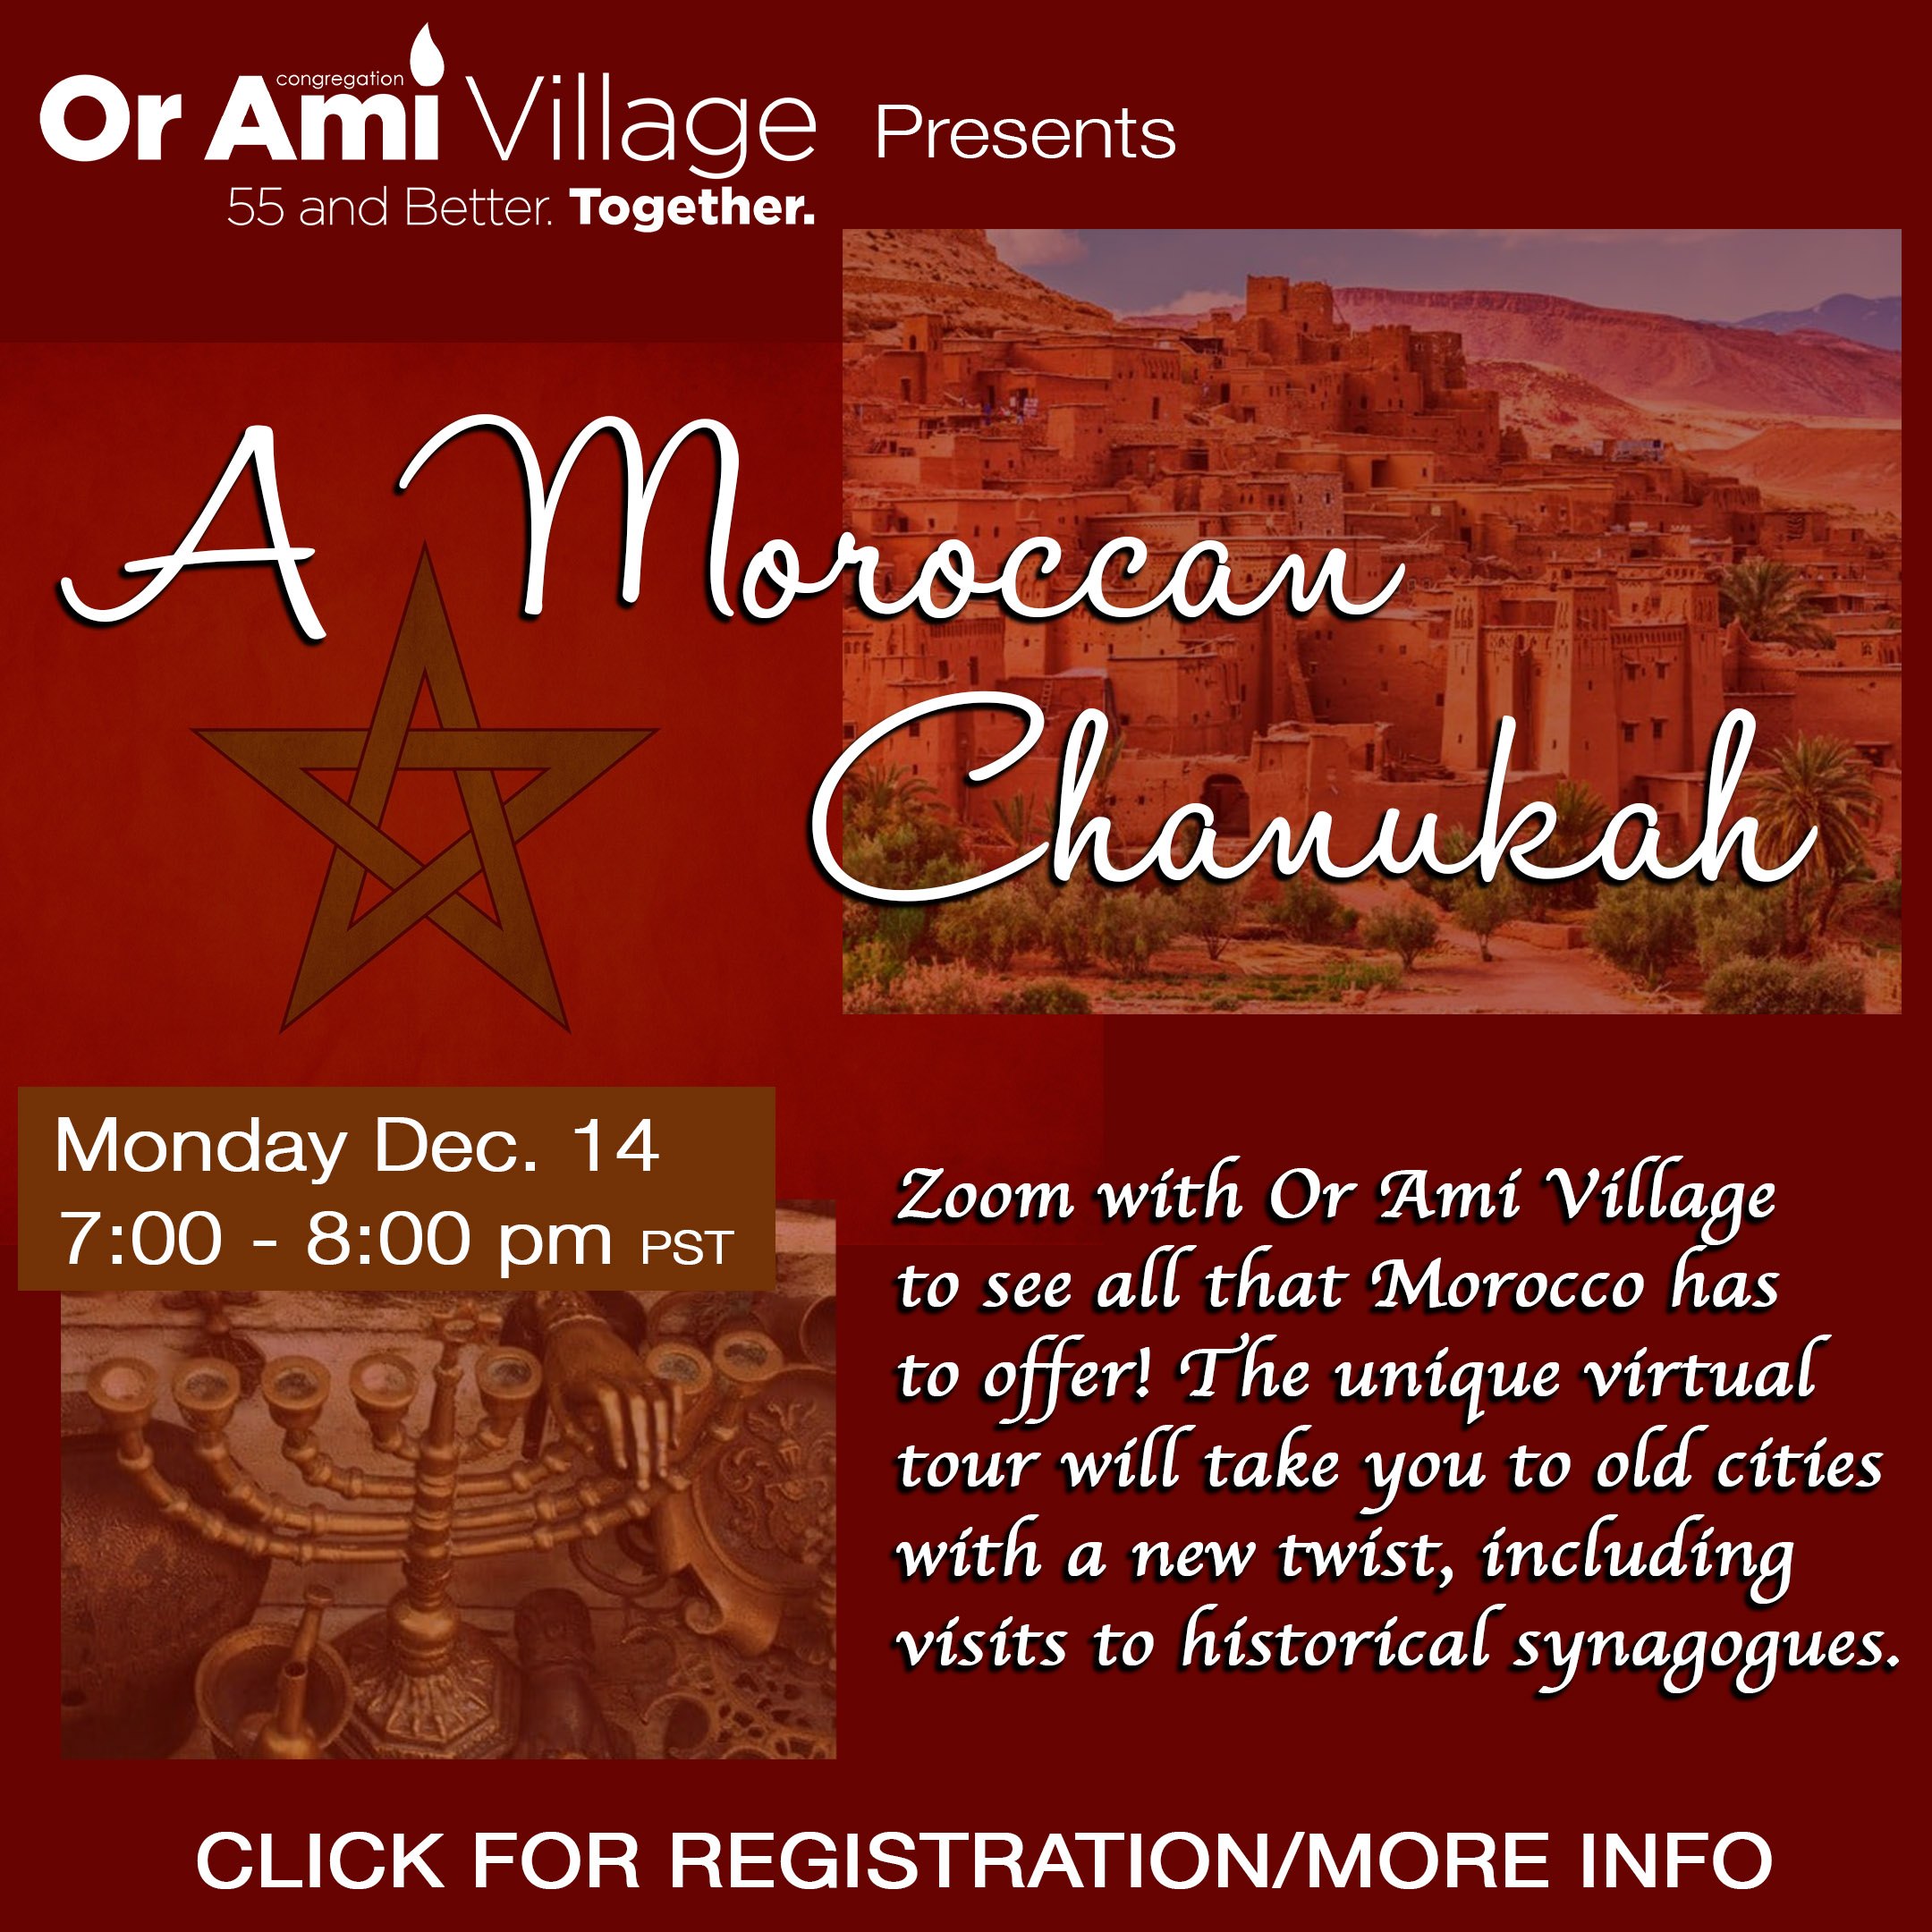 a moroccan chanukah with CLICK